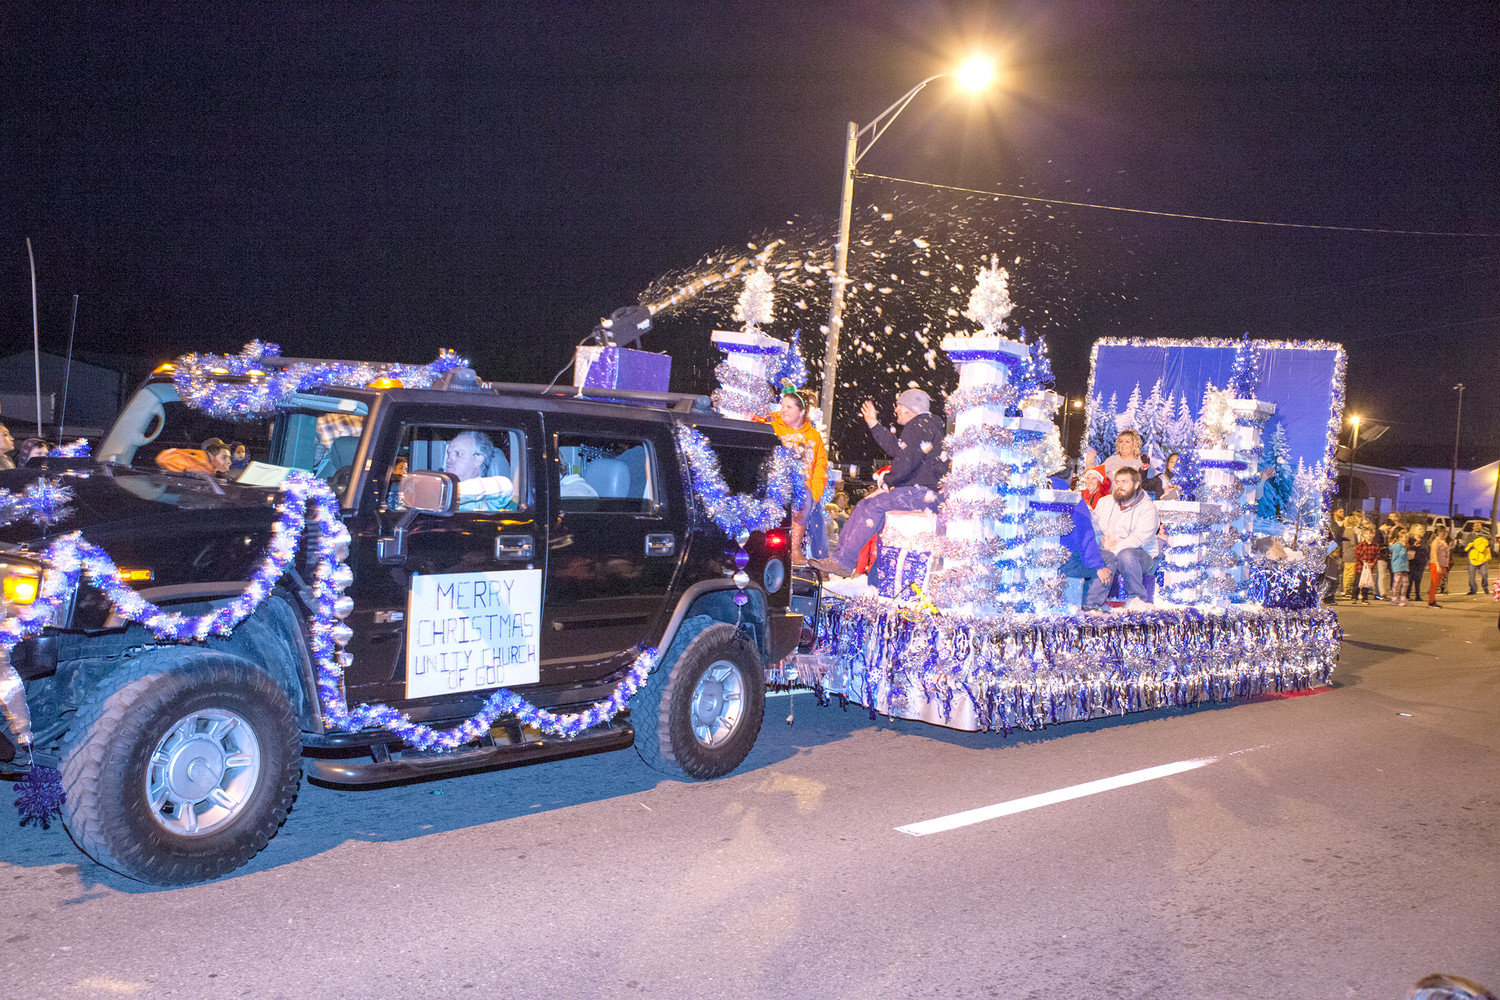 UNITY CHURCH OF GOD won the award for best Religious float in the Mainstreet Cleveland Christmas Parade.